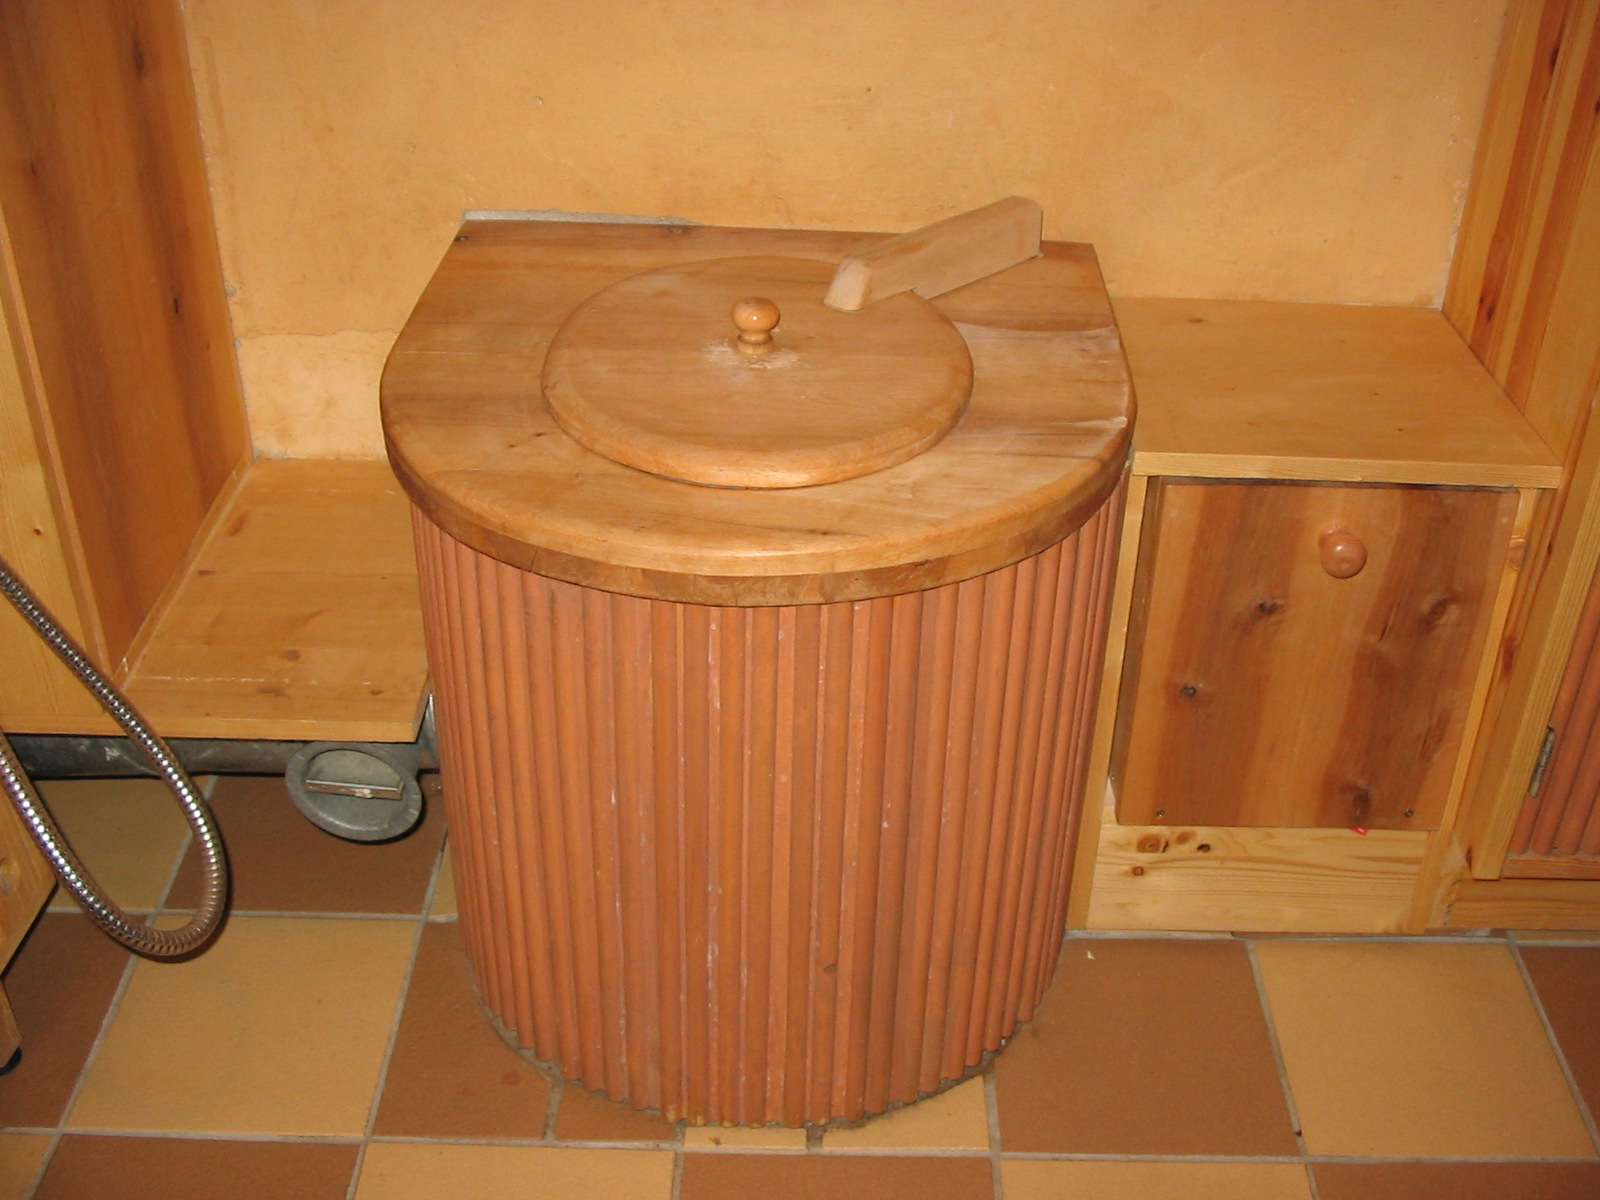 A composting toilet in a wood washroom.